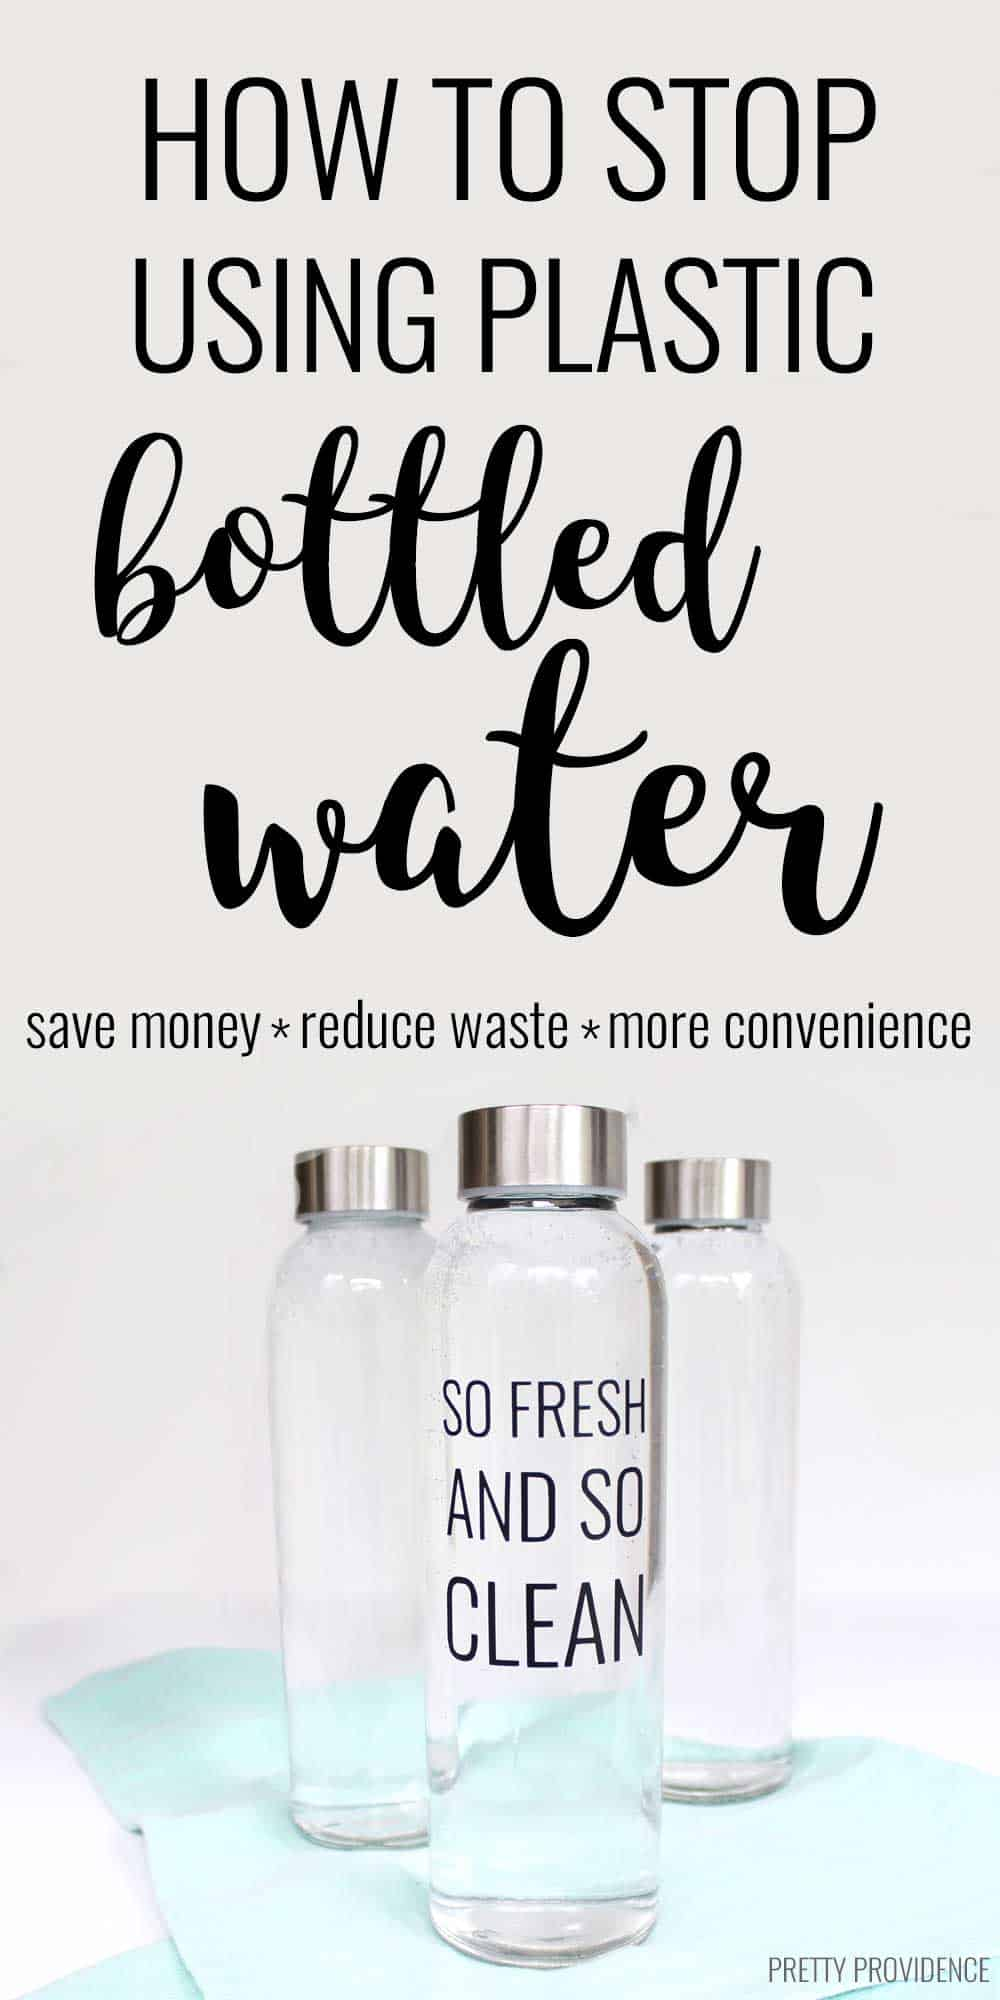 I wanted to stop using plastic bottled water & finally kicked the habit! Seriously so liberating!